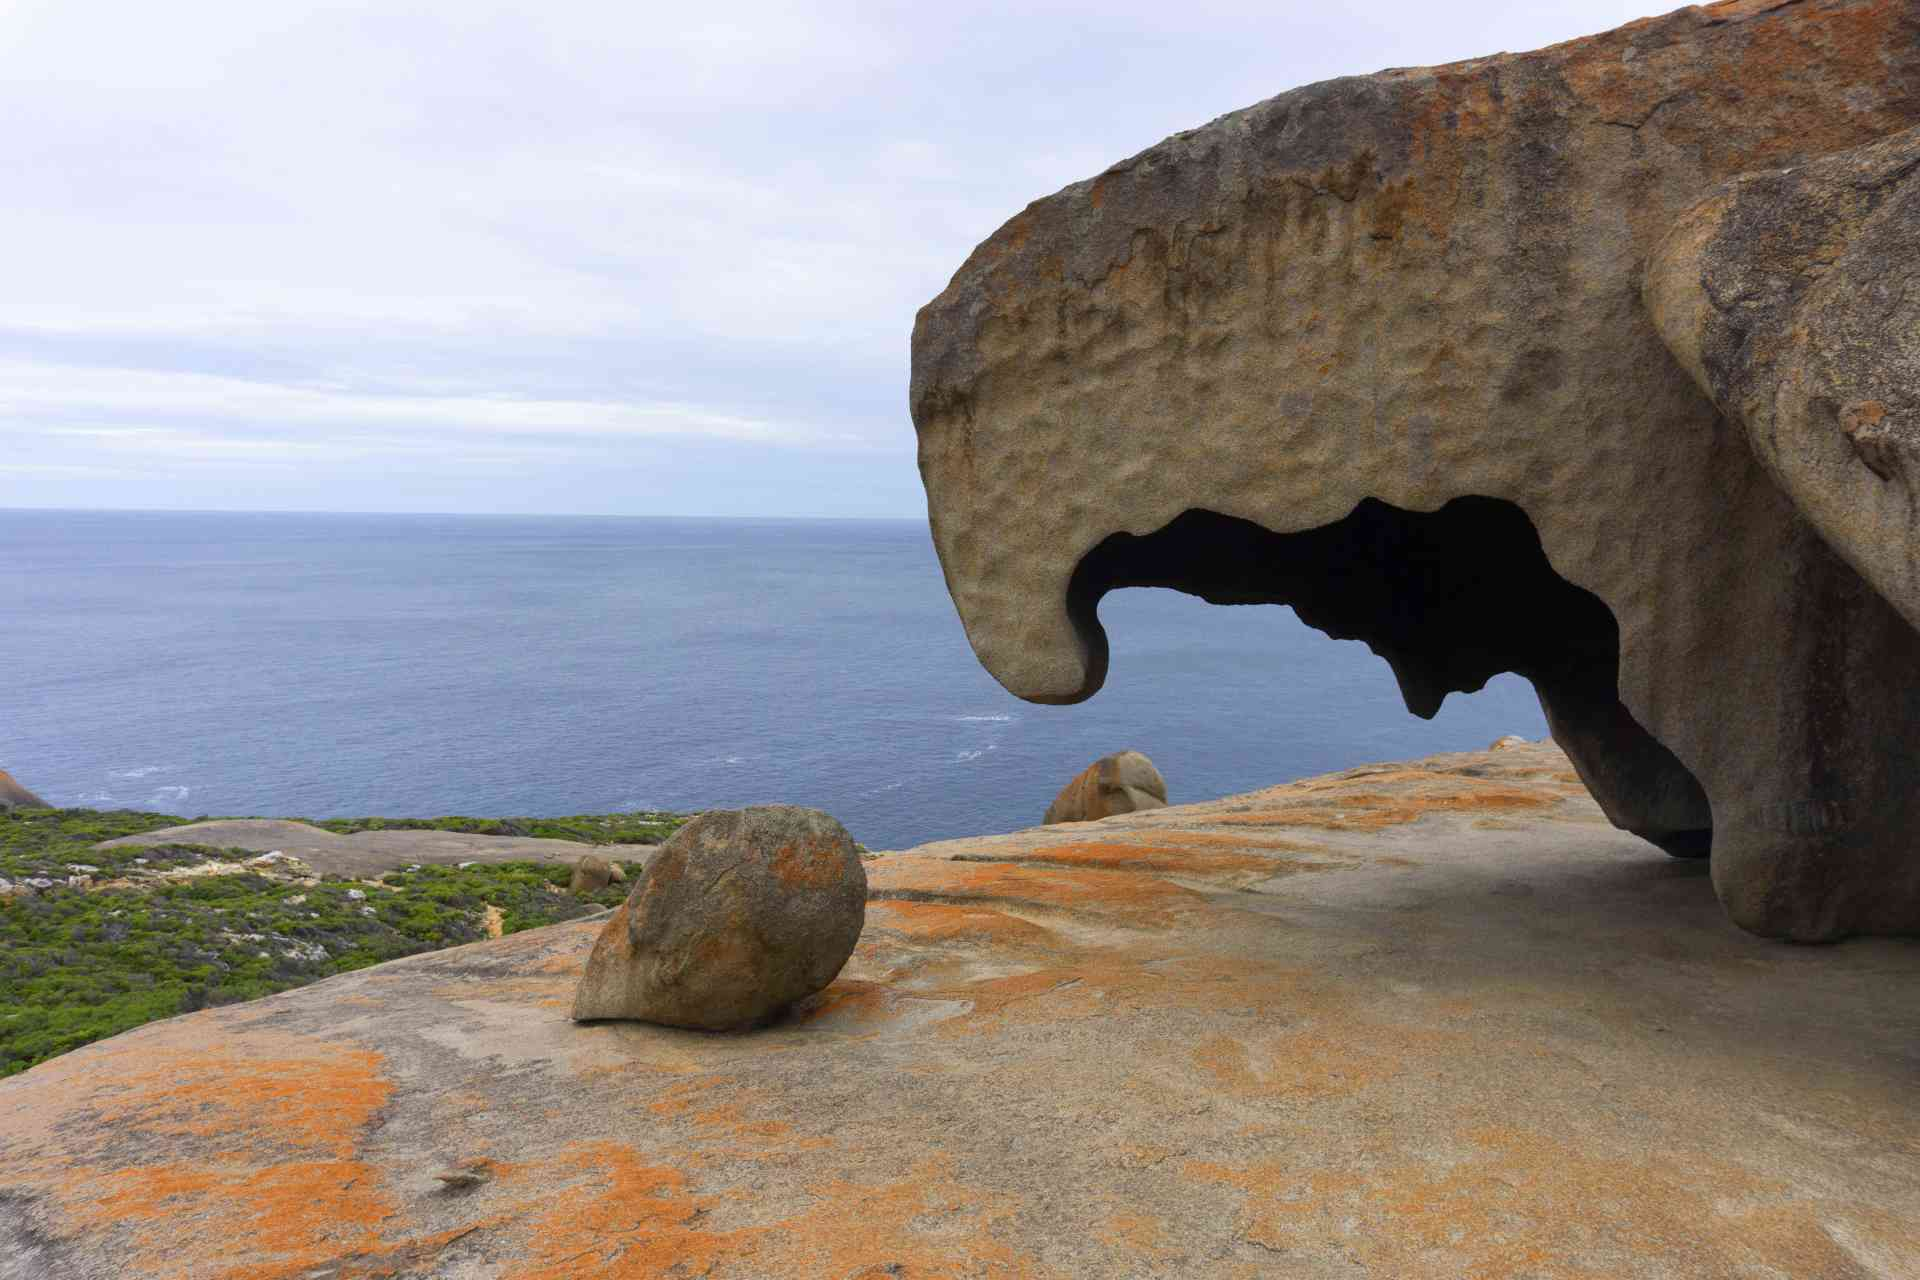 Remarkable Rocks, Kangaroo Island by Laura Roemekso